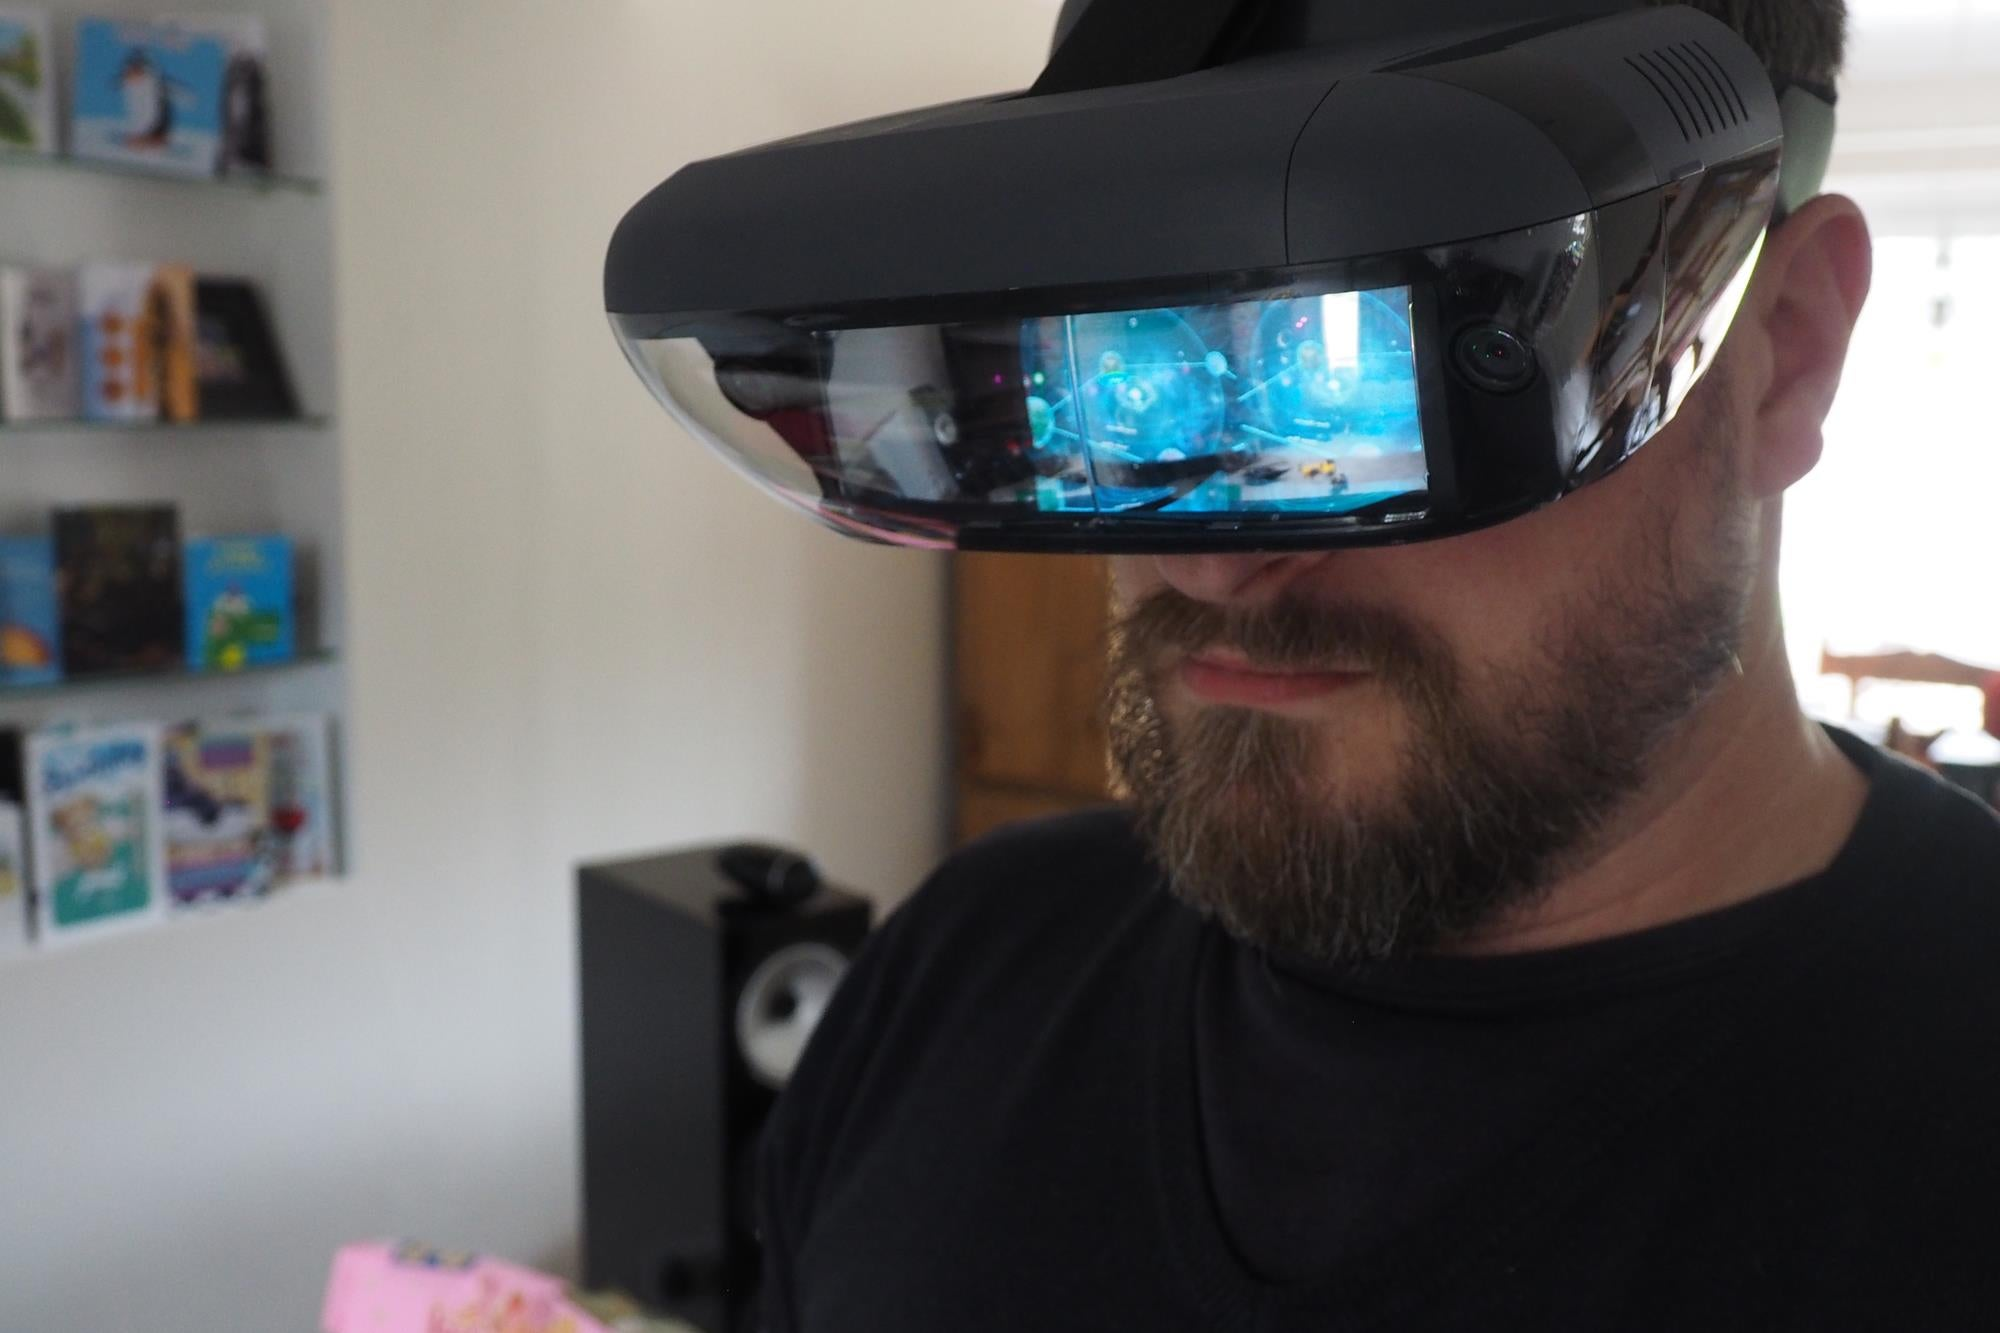 Star Wars Lenovo Jedi Challenges AR Headset with Lightsaber Controller and